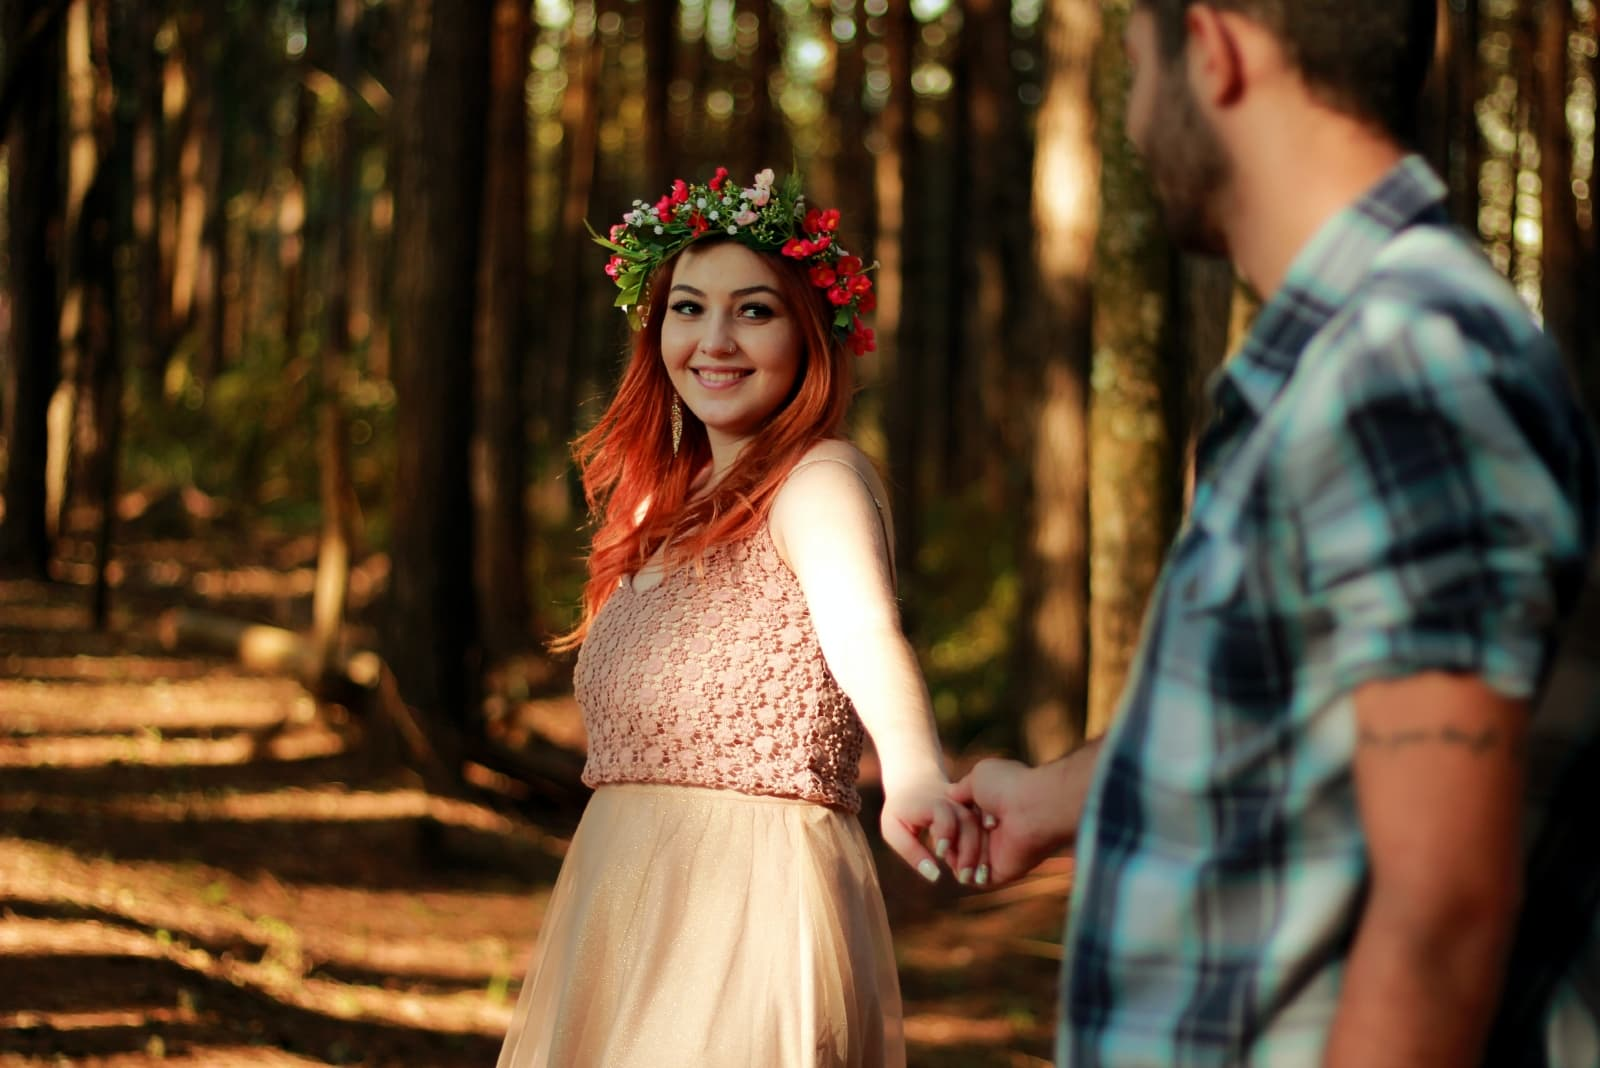 woman looking at man while standing in forest